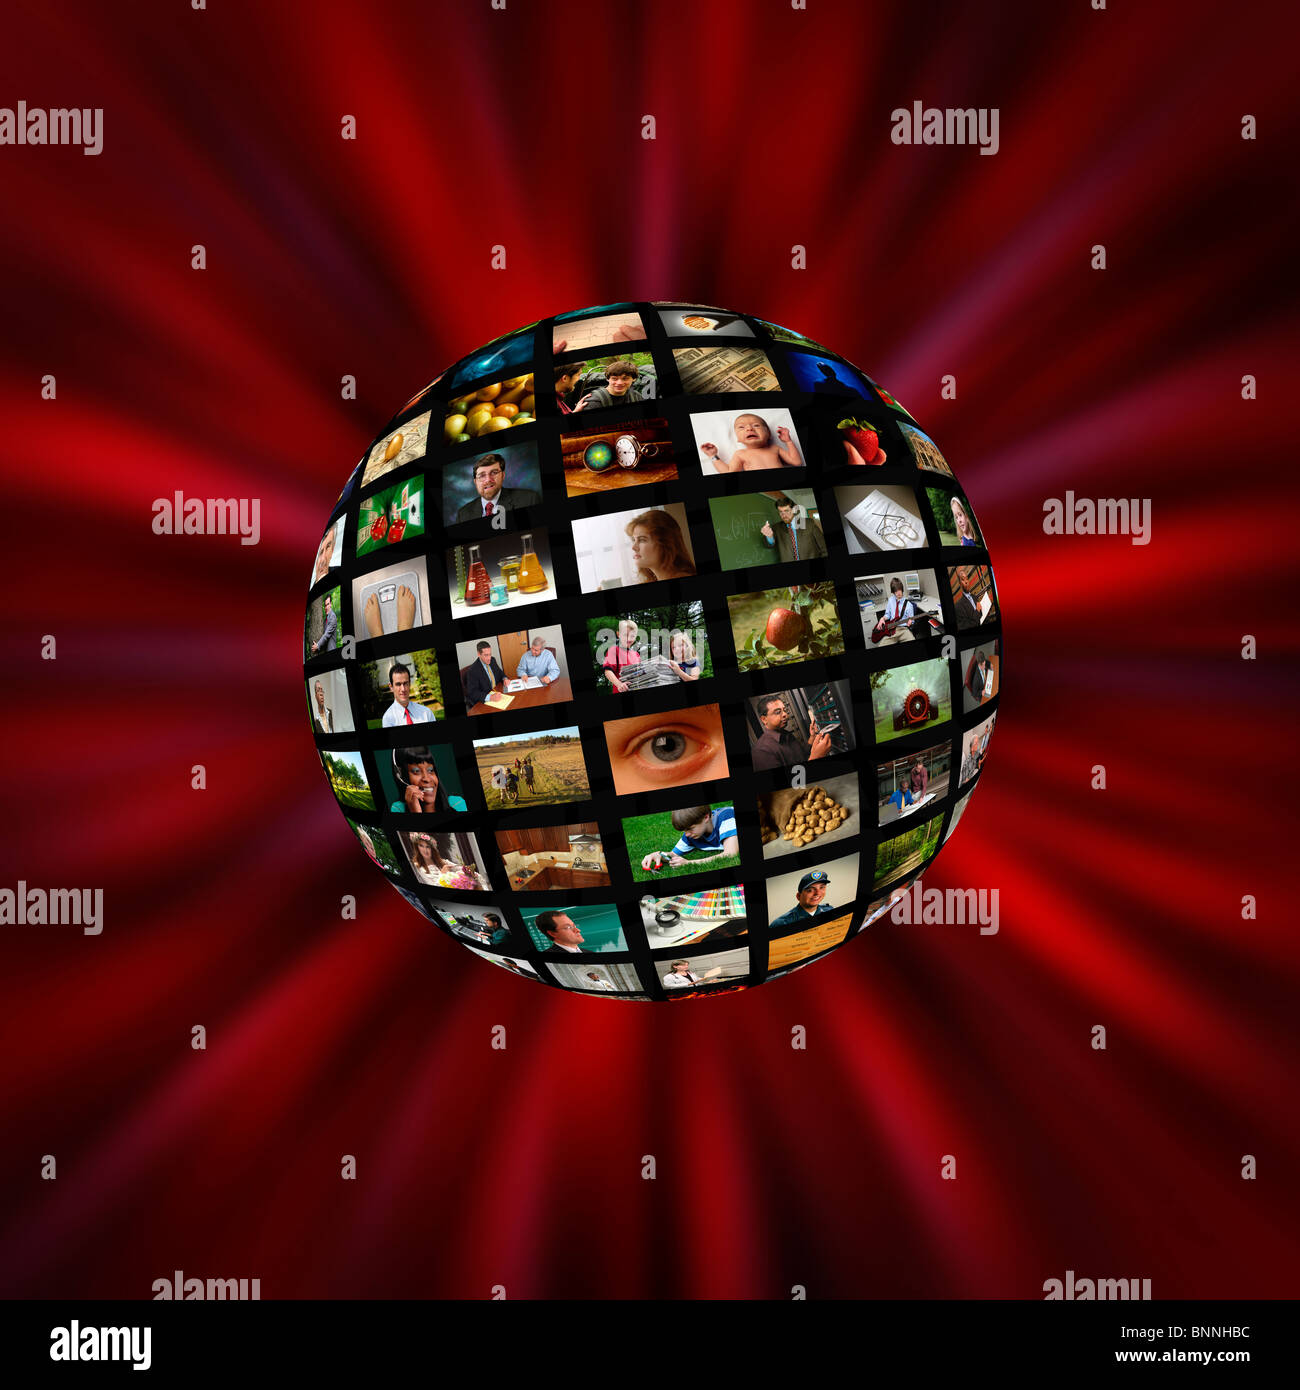 A sphere of pictures or video screens in a red vortex Stock Photo